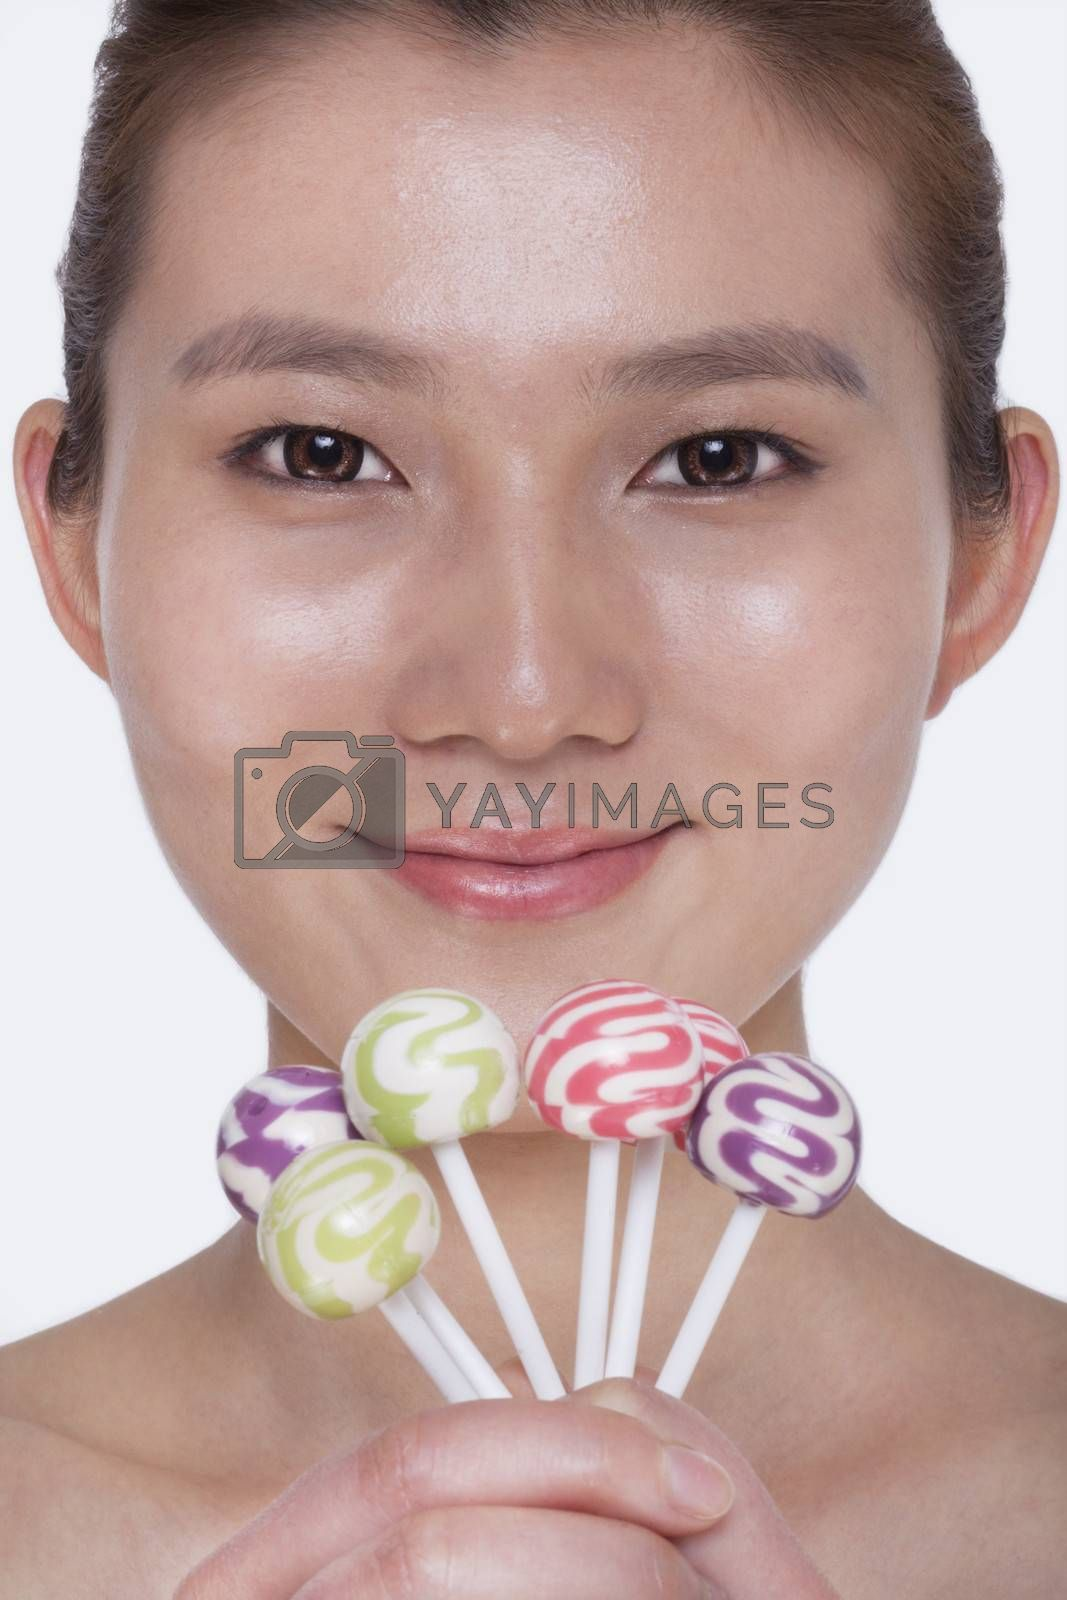 Smiling young woman looking into camera and holding up colorful lollipops, studio shot